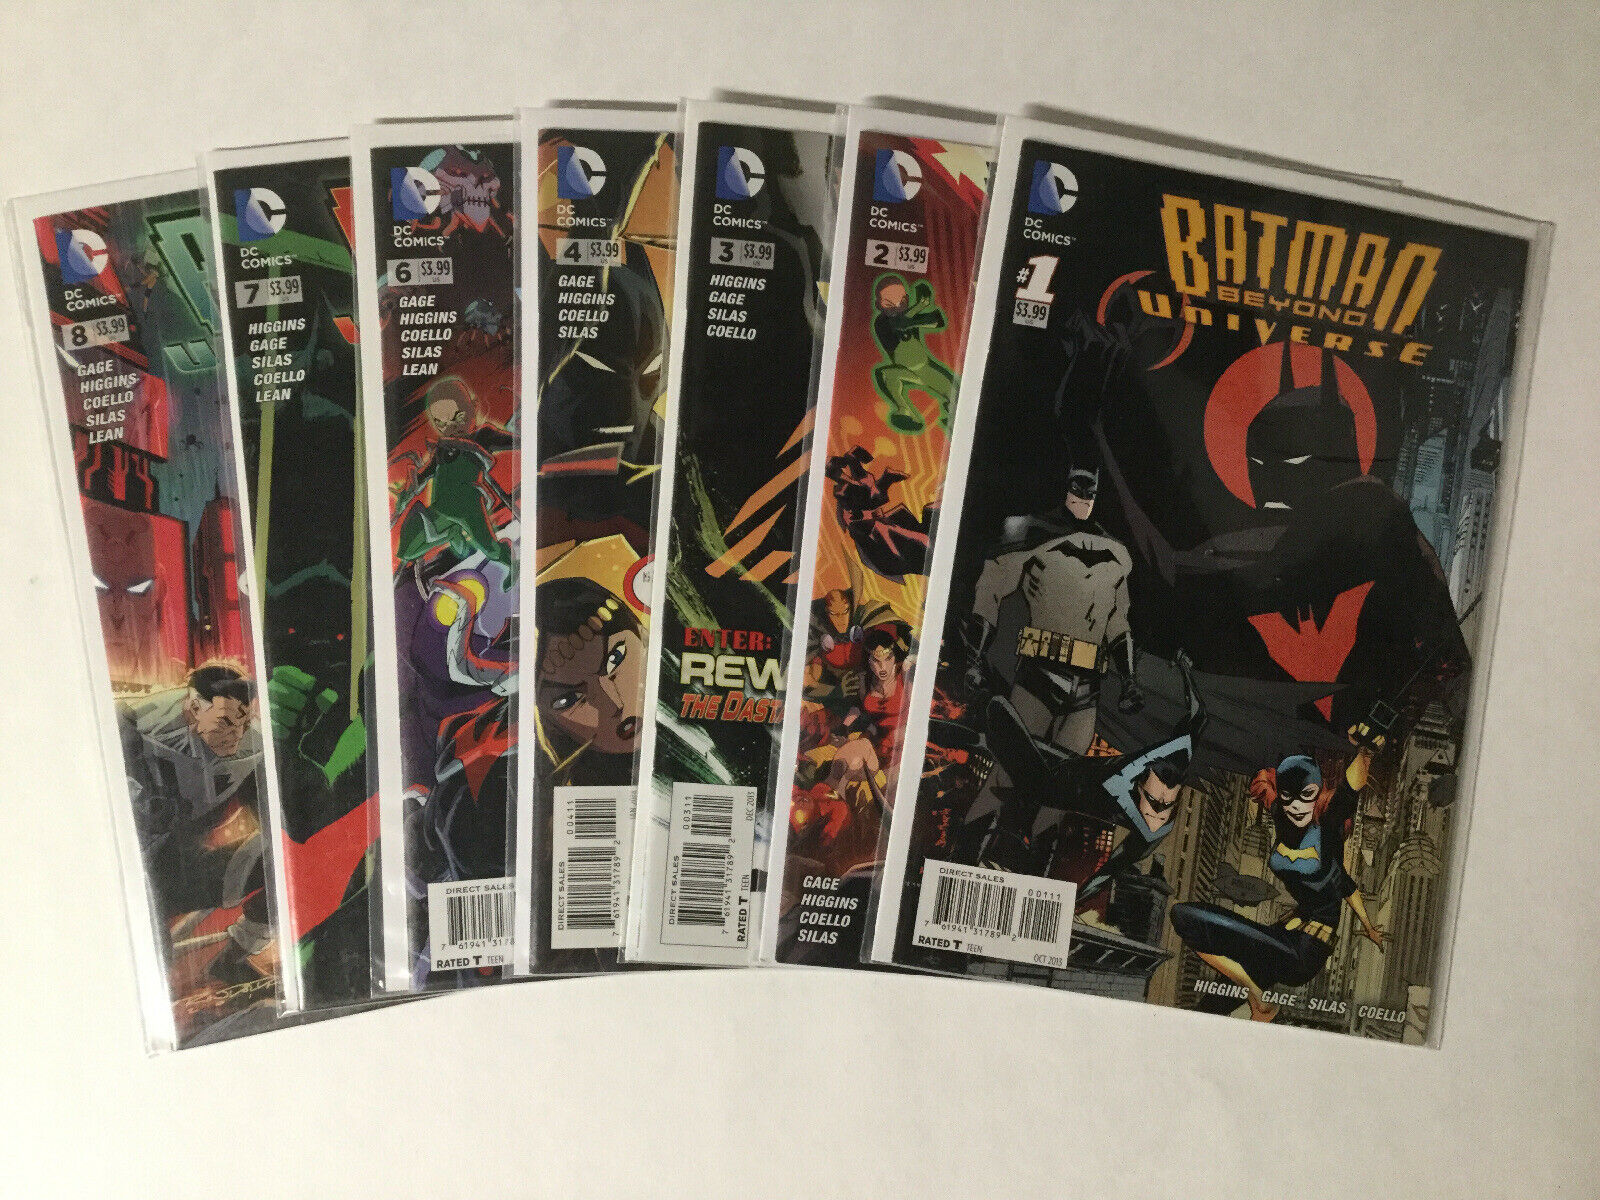 BATMAN BEYOND #3 NEAR MINT 1999